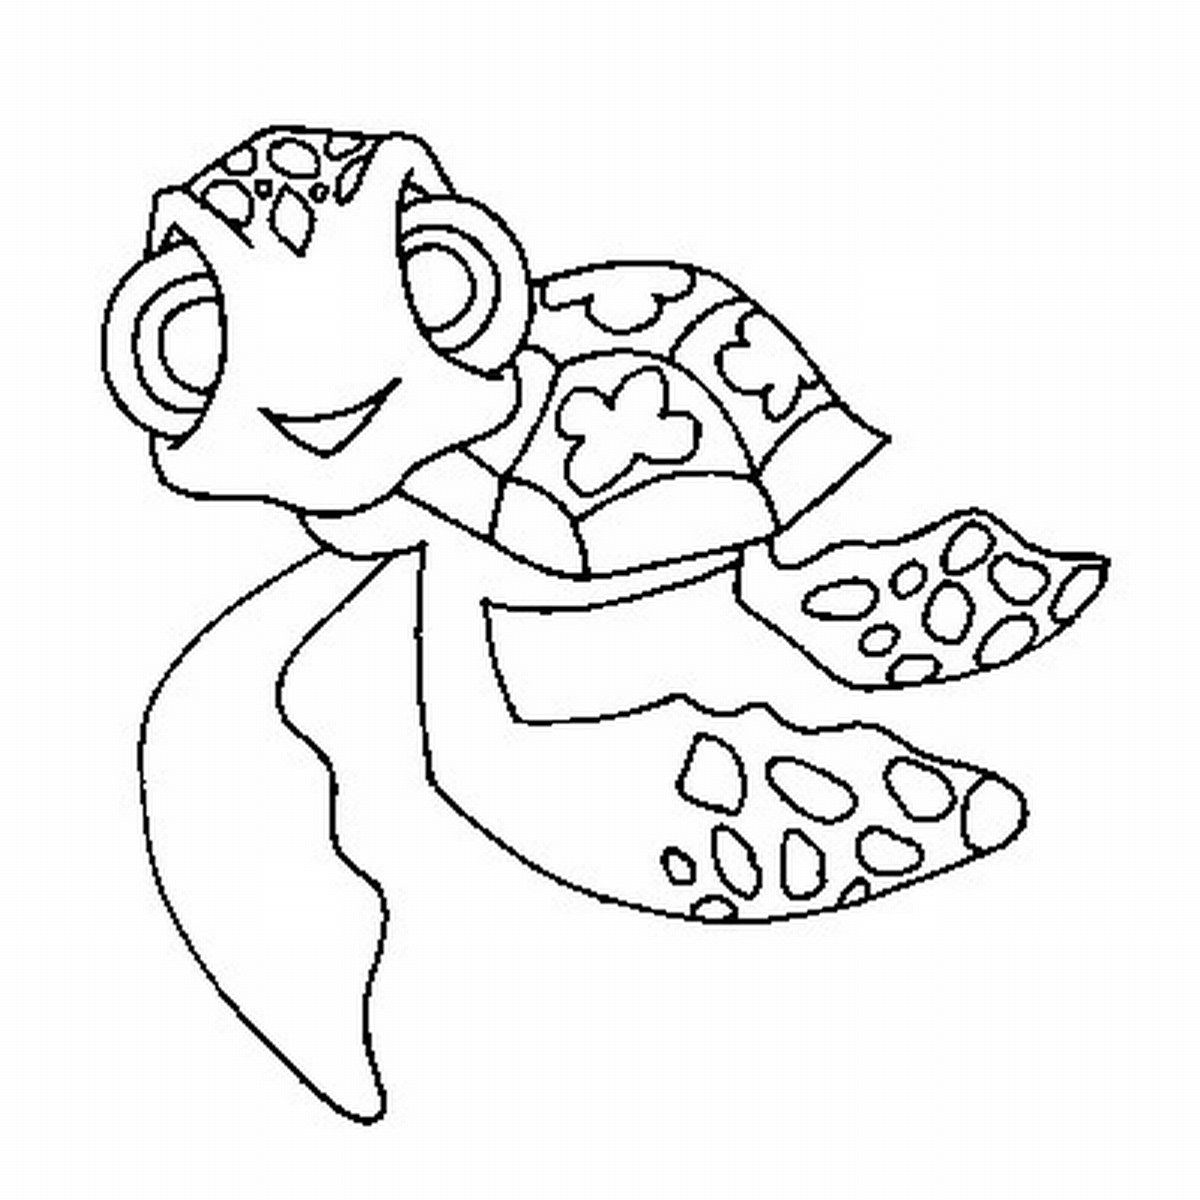 nemo coloring pages to print finding nemo coloring pages to print sea turtle - Pixar Coloring Pages Finding Nemo